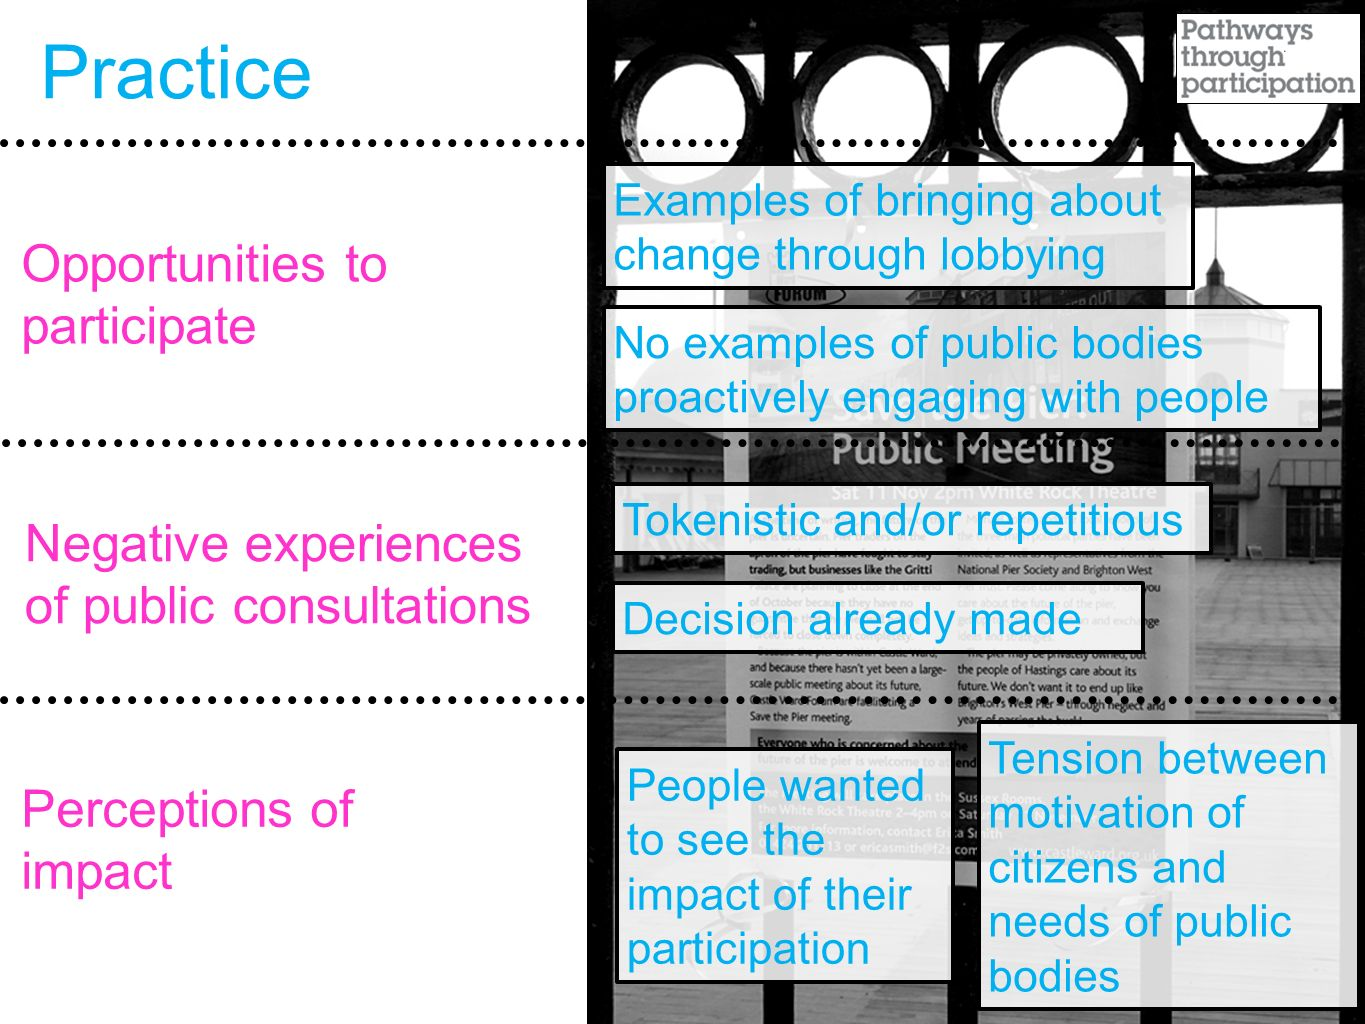 Practice Opportunities to participate Negative experiences of public consultations Perceptions of impact No examples of public bodies proactively engaging with people Examples of bringing about change through lobbying Tokenistic and/or repetitious Decision already made People wanted to see the impact of their participation Tension between motivation of citizens and needs of public bodies